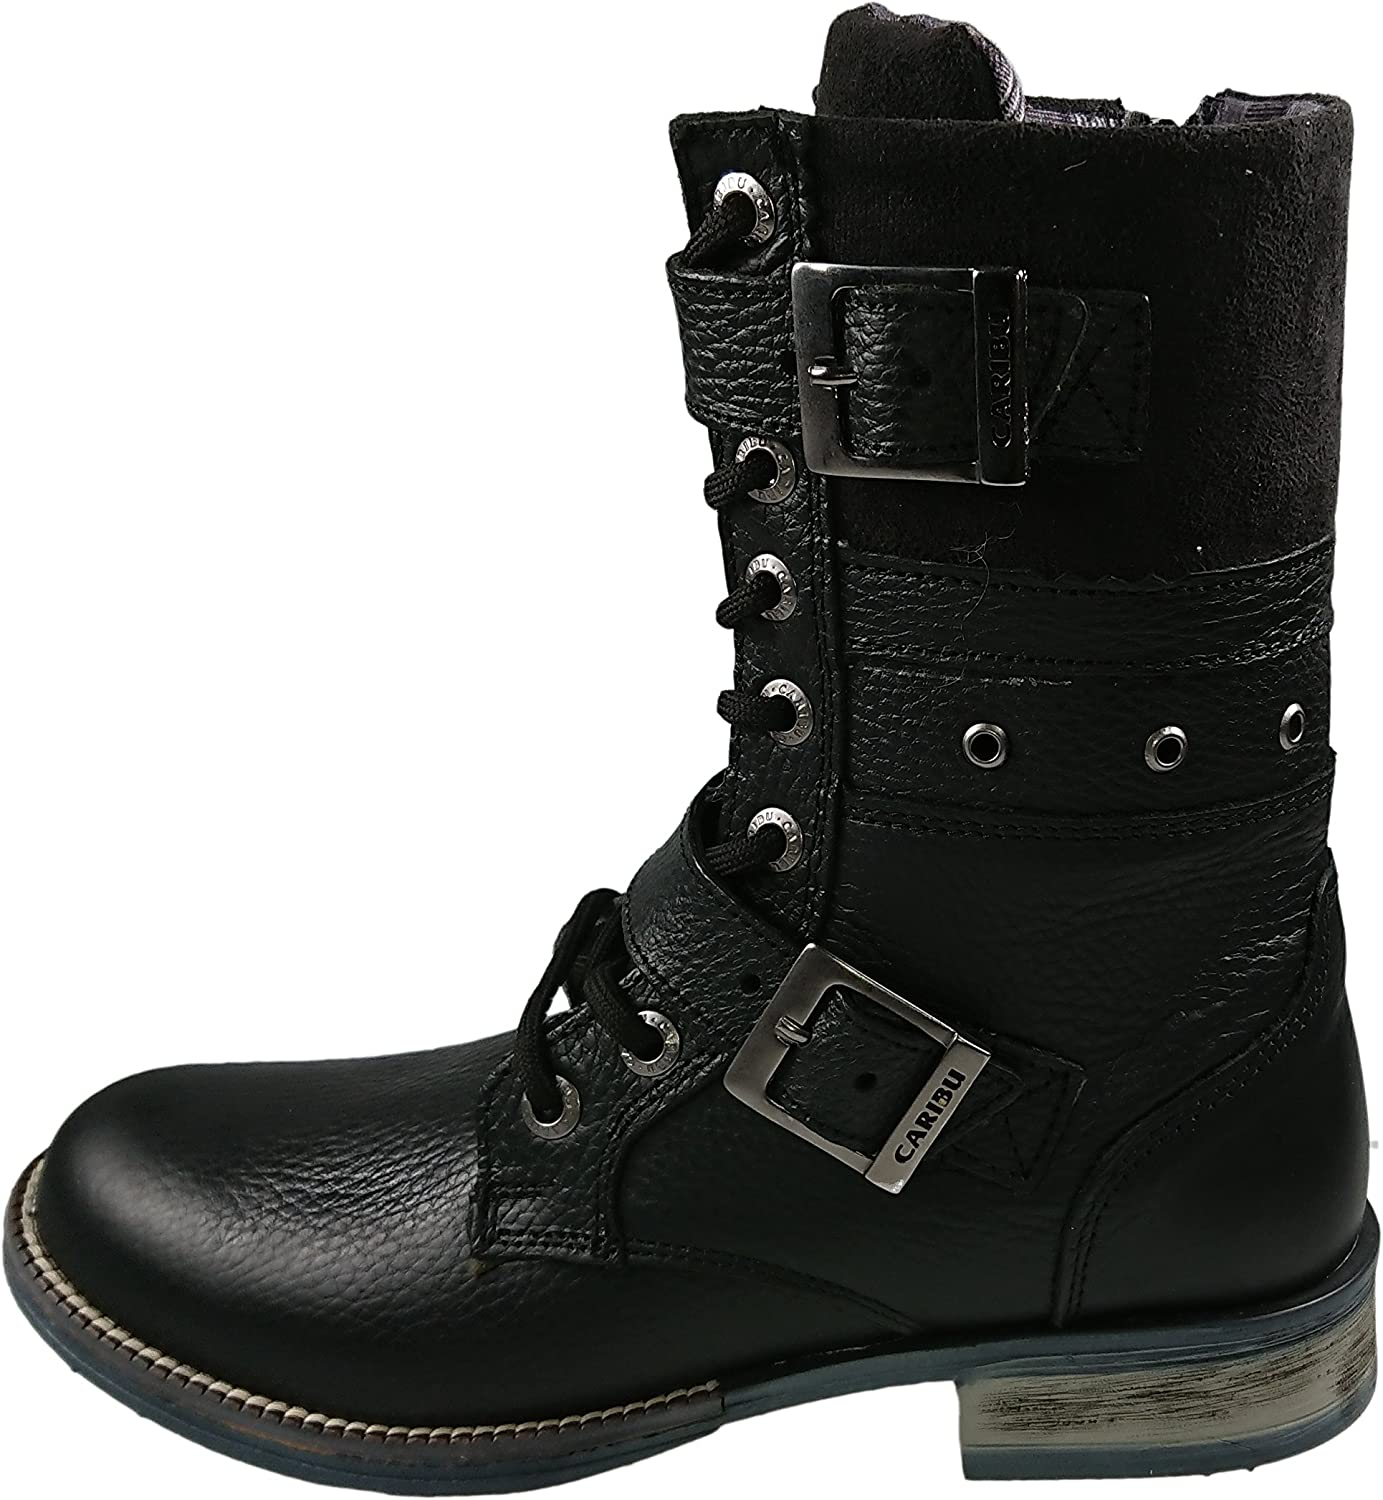 Women's Casual Ankle Boots Black Houston Mall Quantity limited 225Z Style